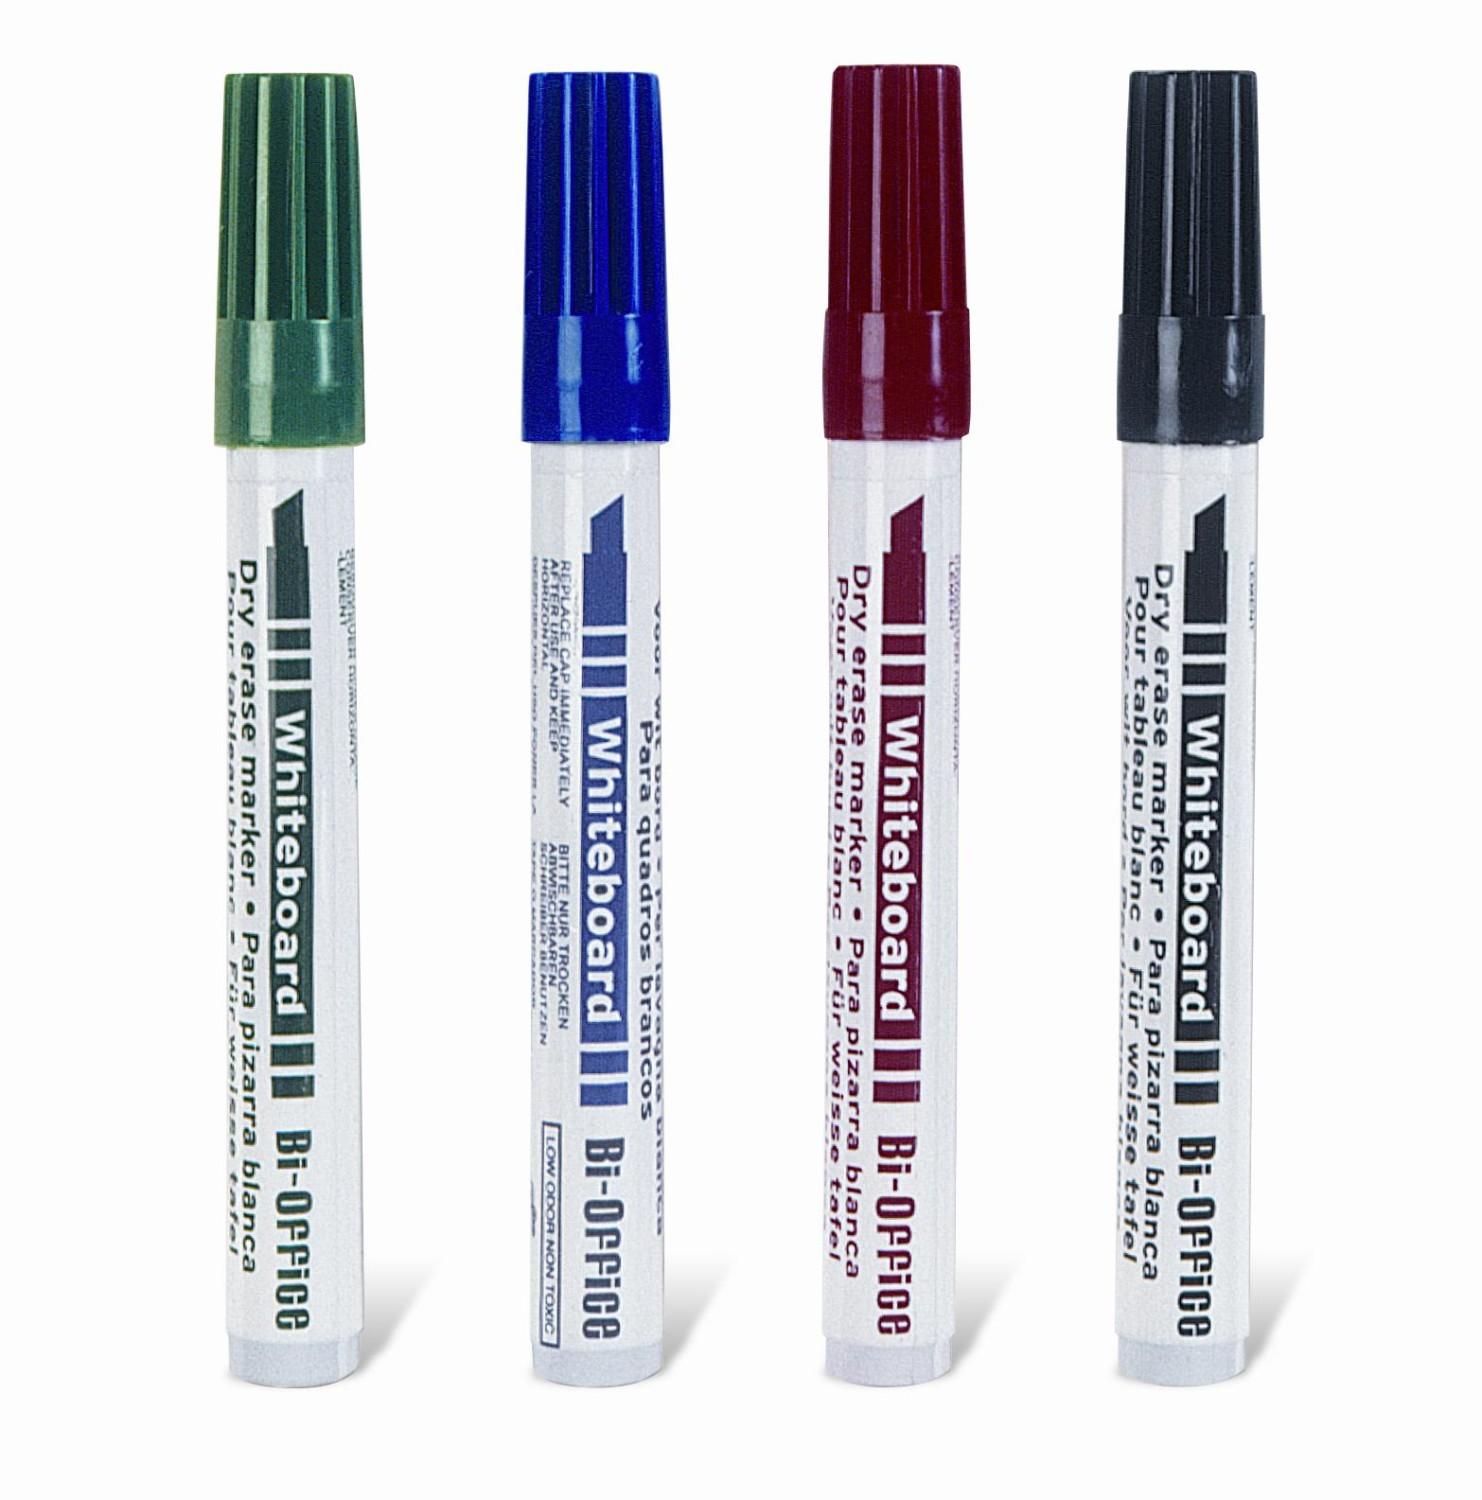 An image of 4 x Marker Pens for Whiteboards - Whiteboards